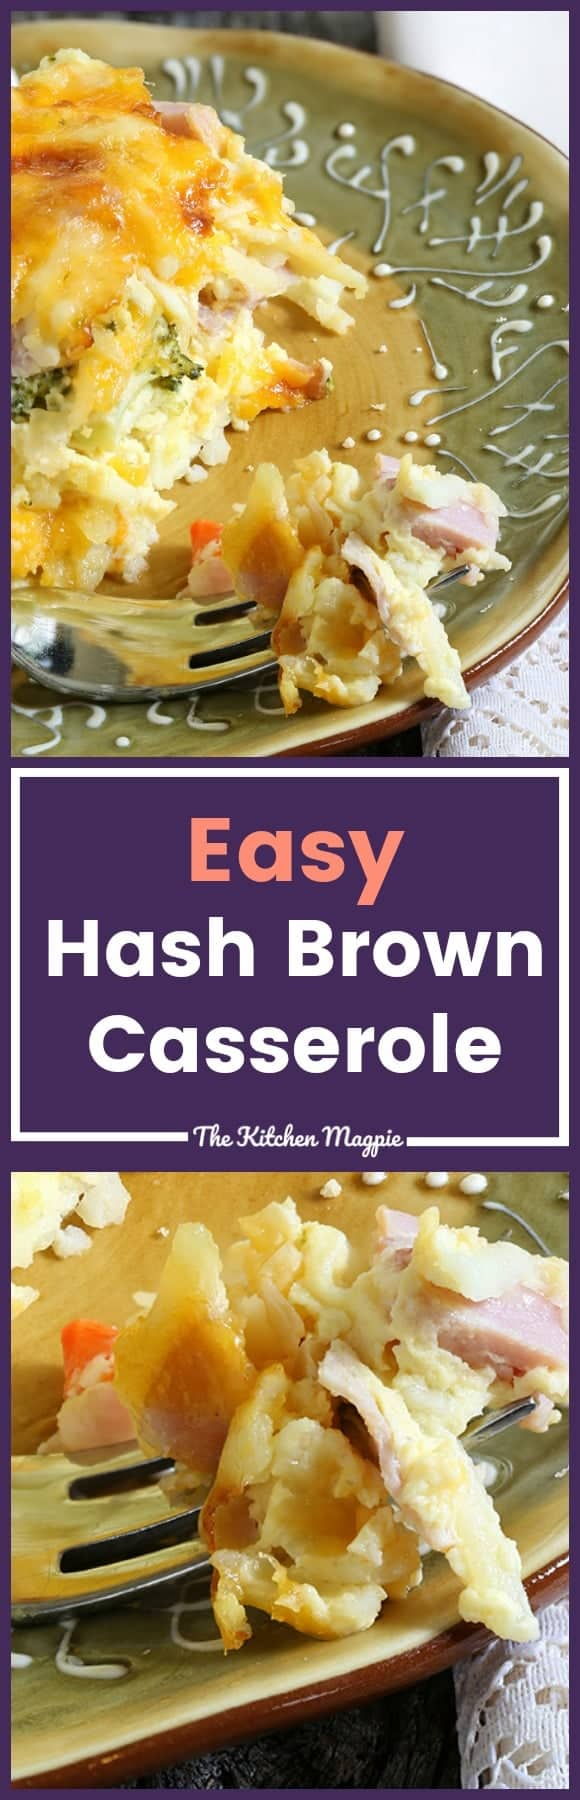 Simple, Easy Hash Brown Casserole. Perfect for lazy Sunday mornings or holiday breakfasts! #recipe #christmas #casserole #breakfast